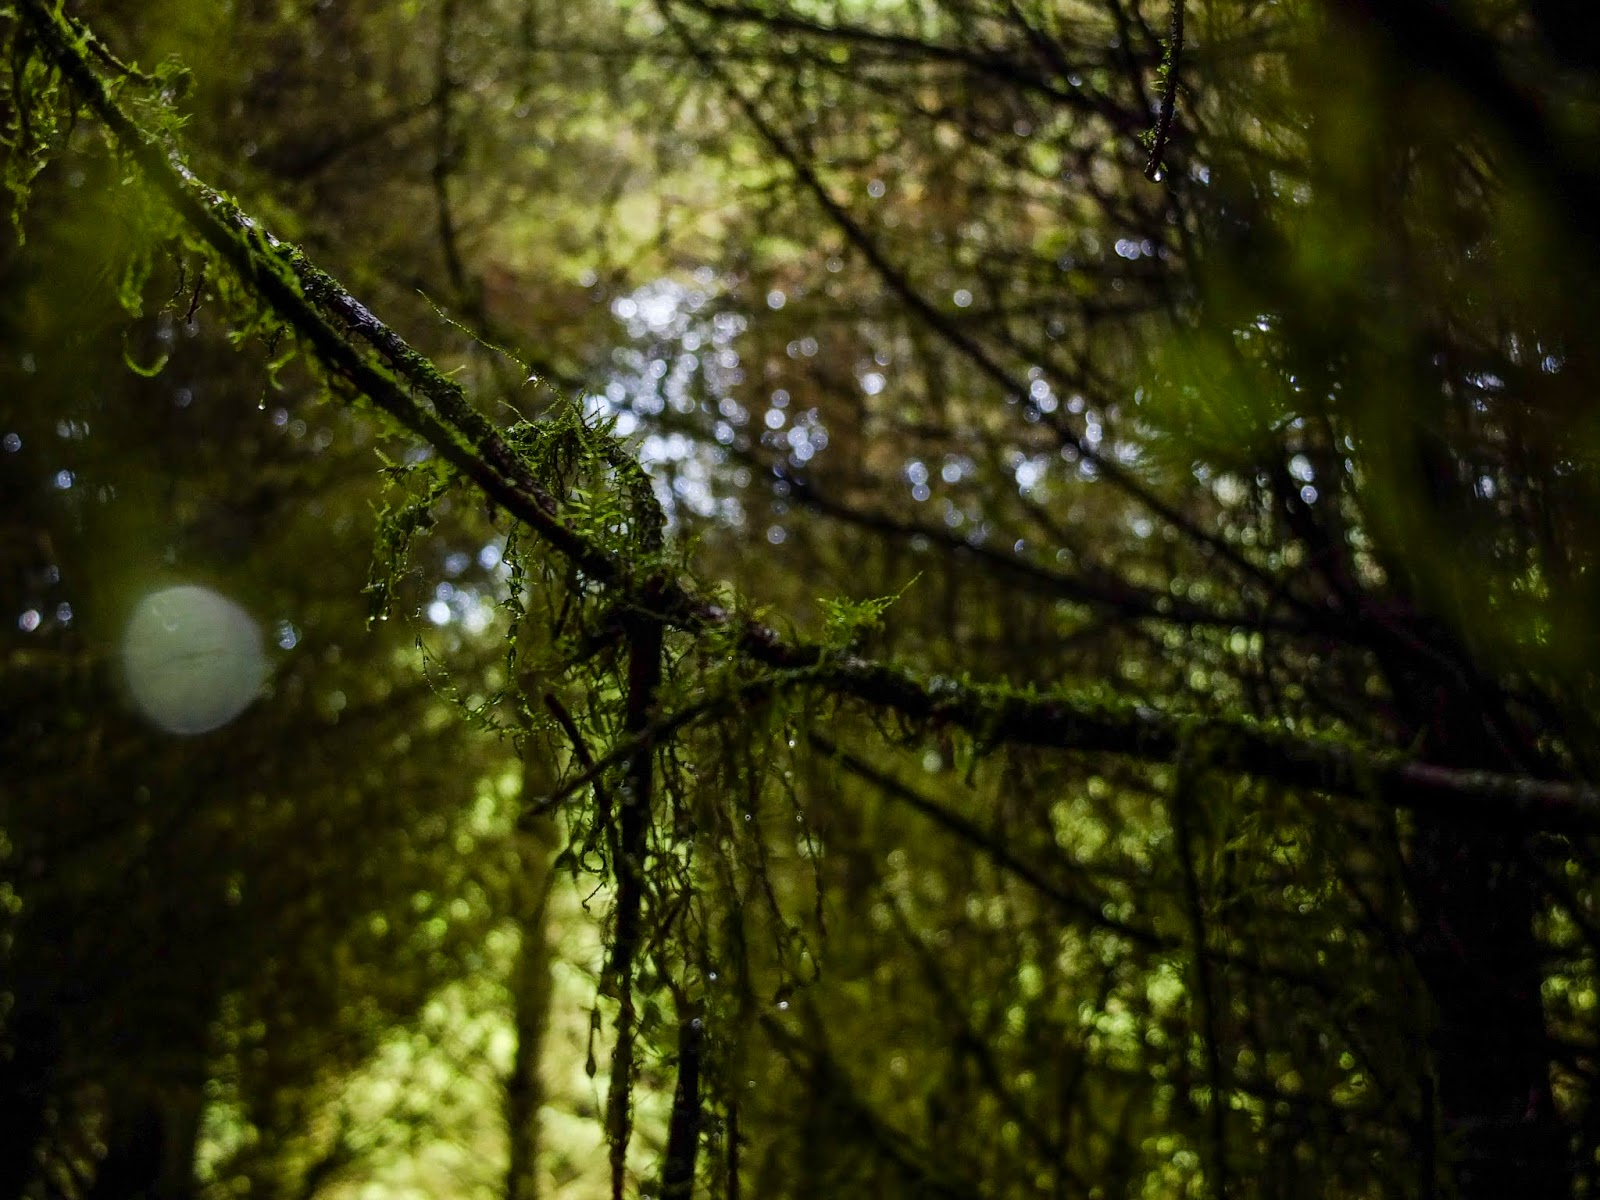 Mossy tree branches inside a forest with light shining through.